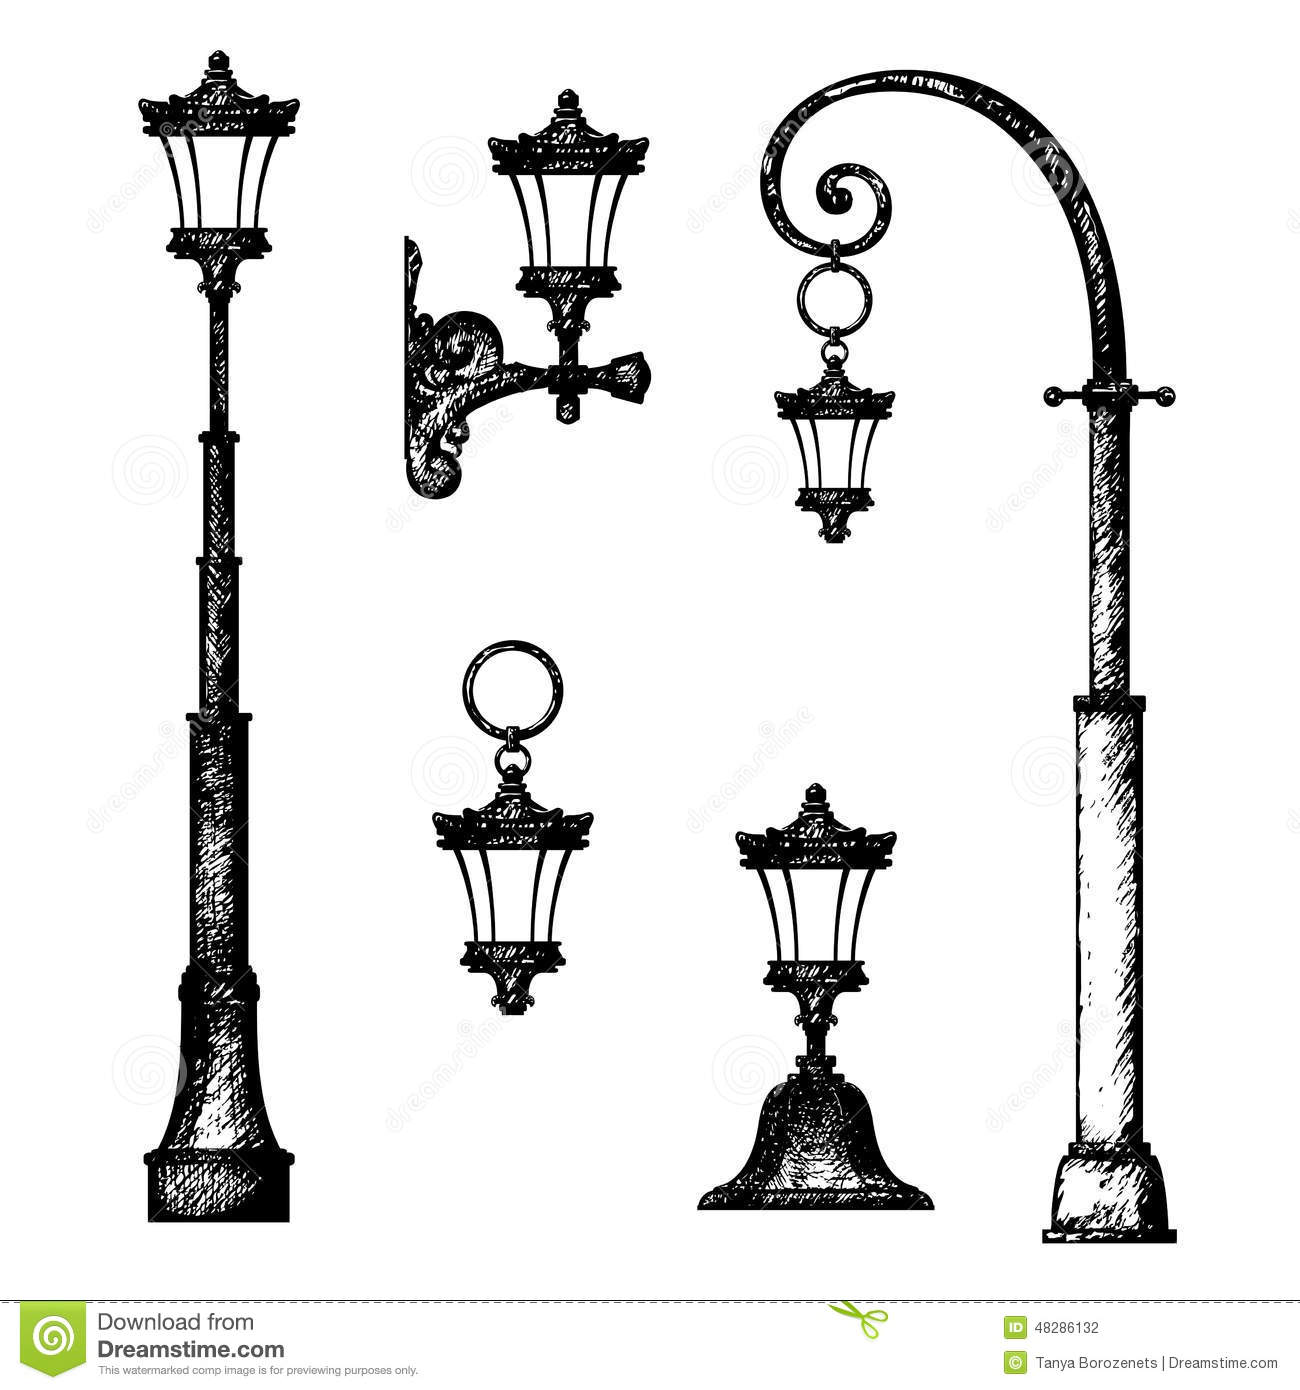 Sketch Of Street Lamp Stock Illustration Illustration Of